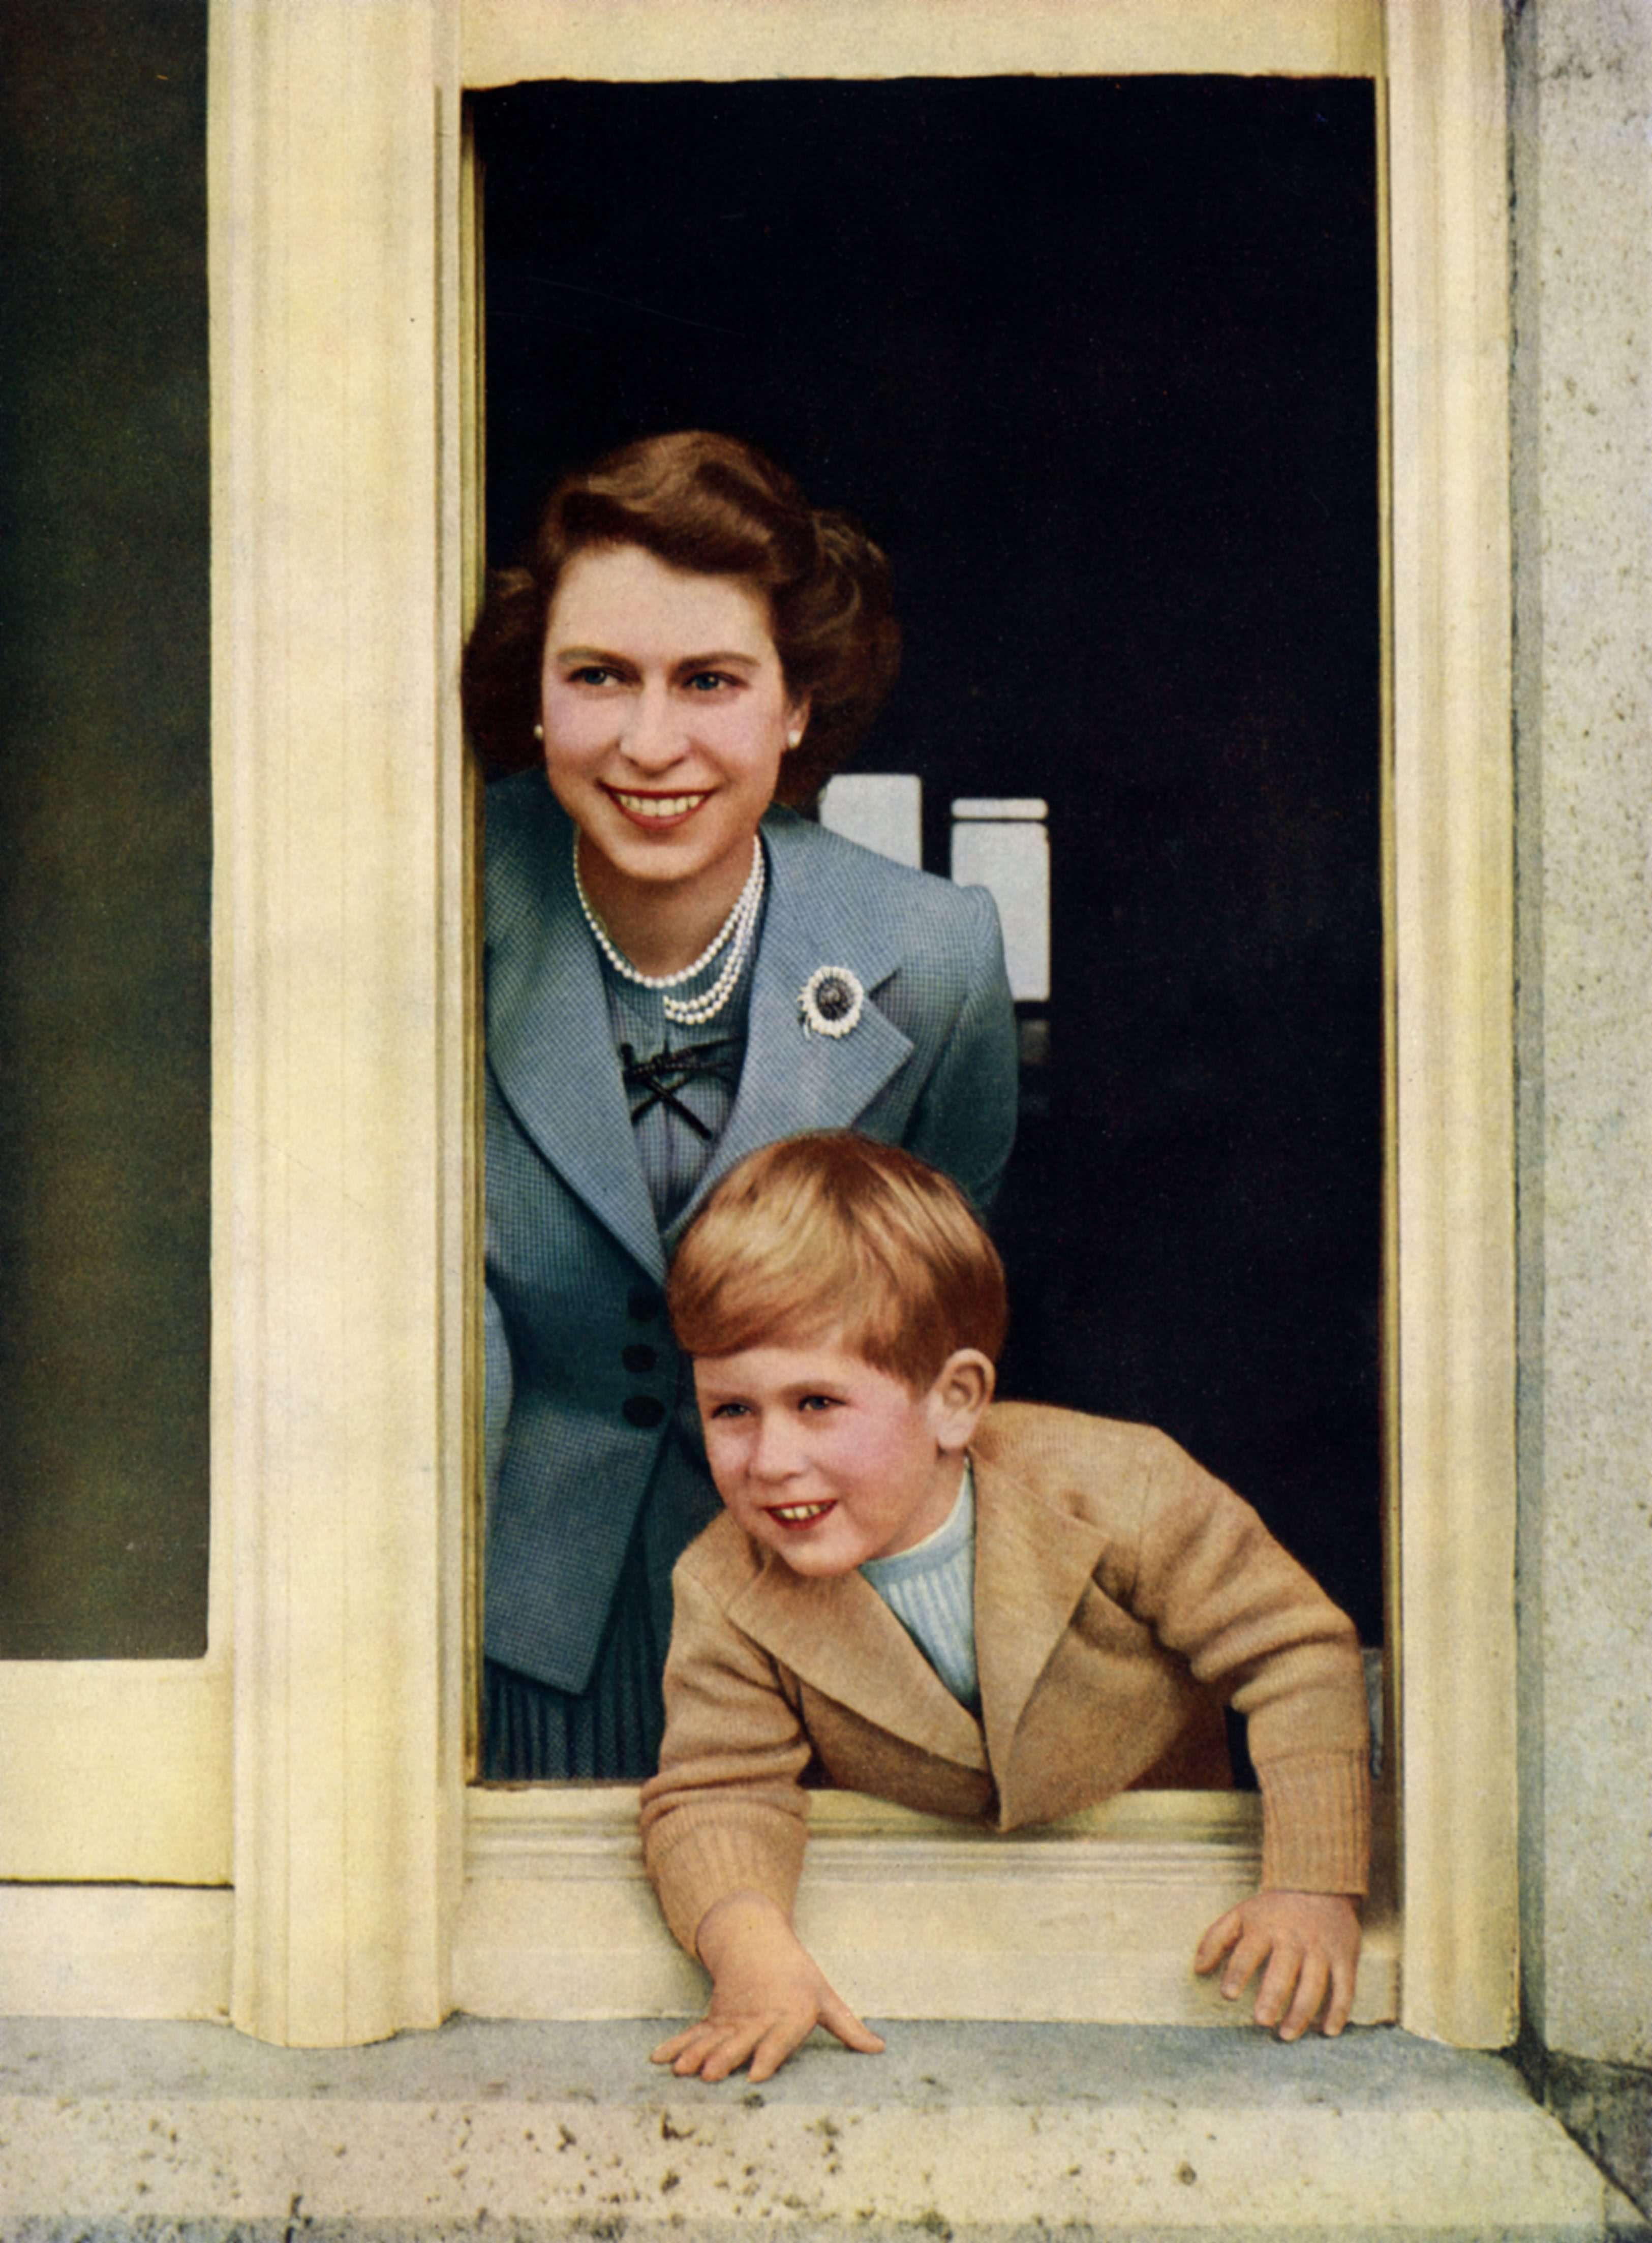 Queen Elizabeth Ii and Prince Charles Prince of Wales